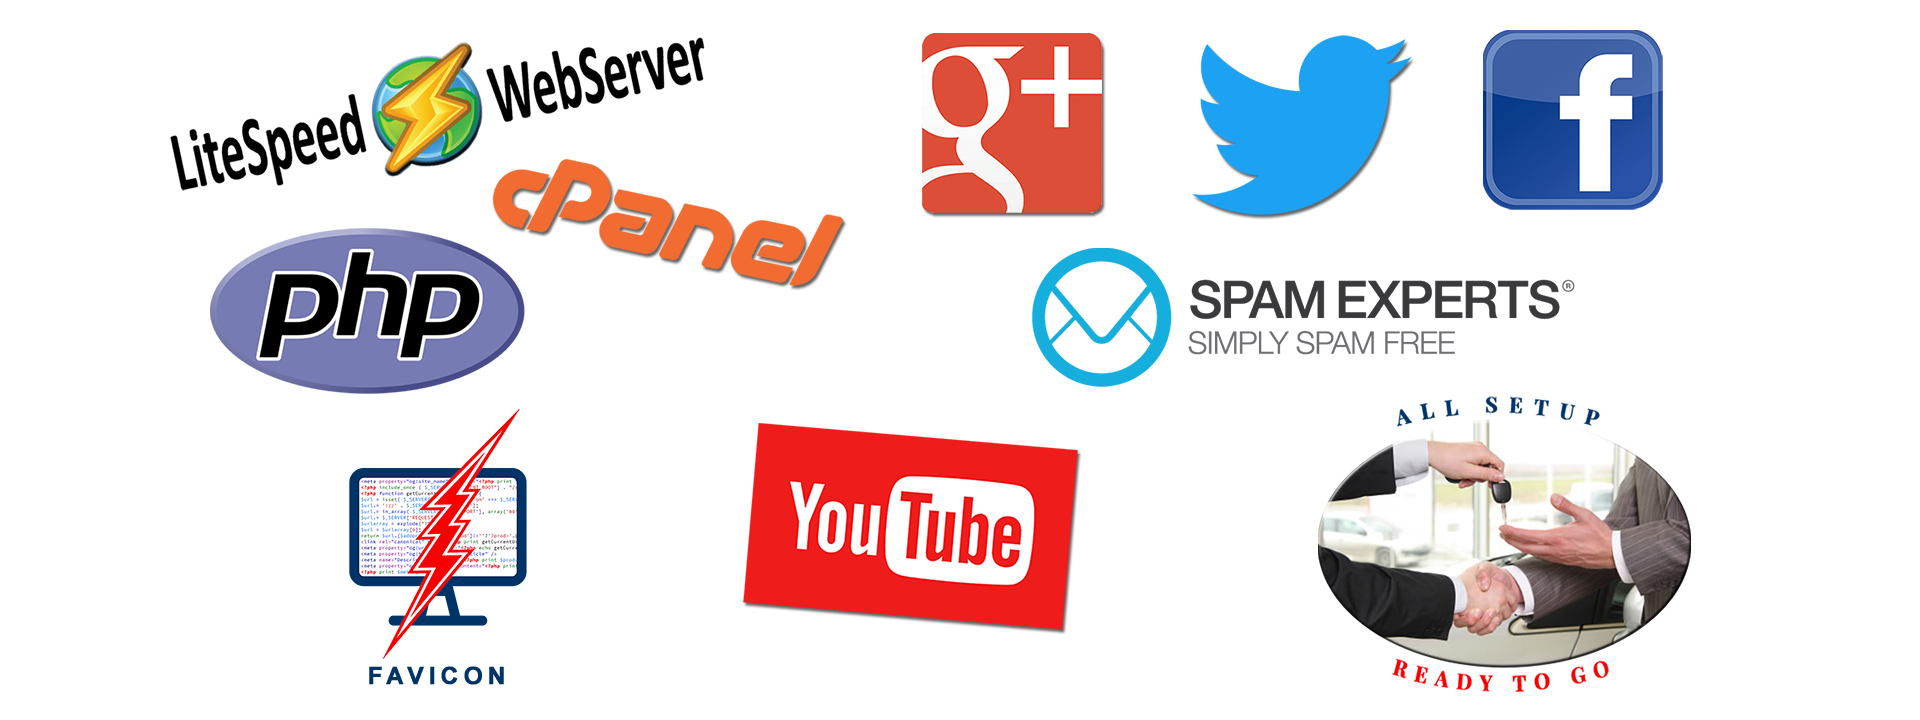 Litespeed Web Server, cPanel, PHP, SpamExperts, Facebook, Google+, YouTube, Favicons, all setup ready to go